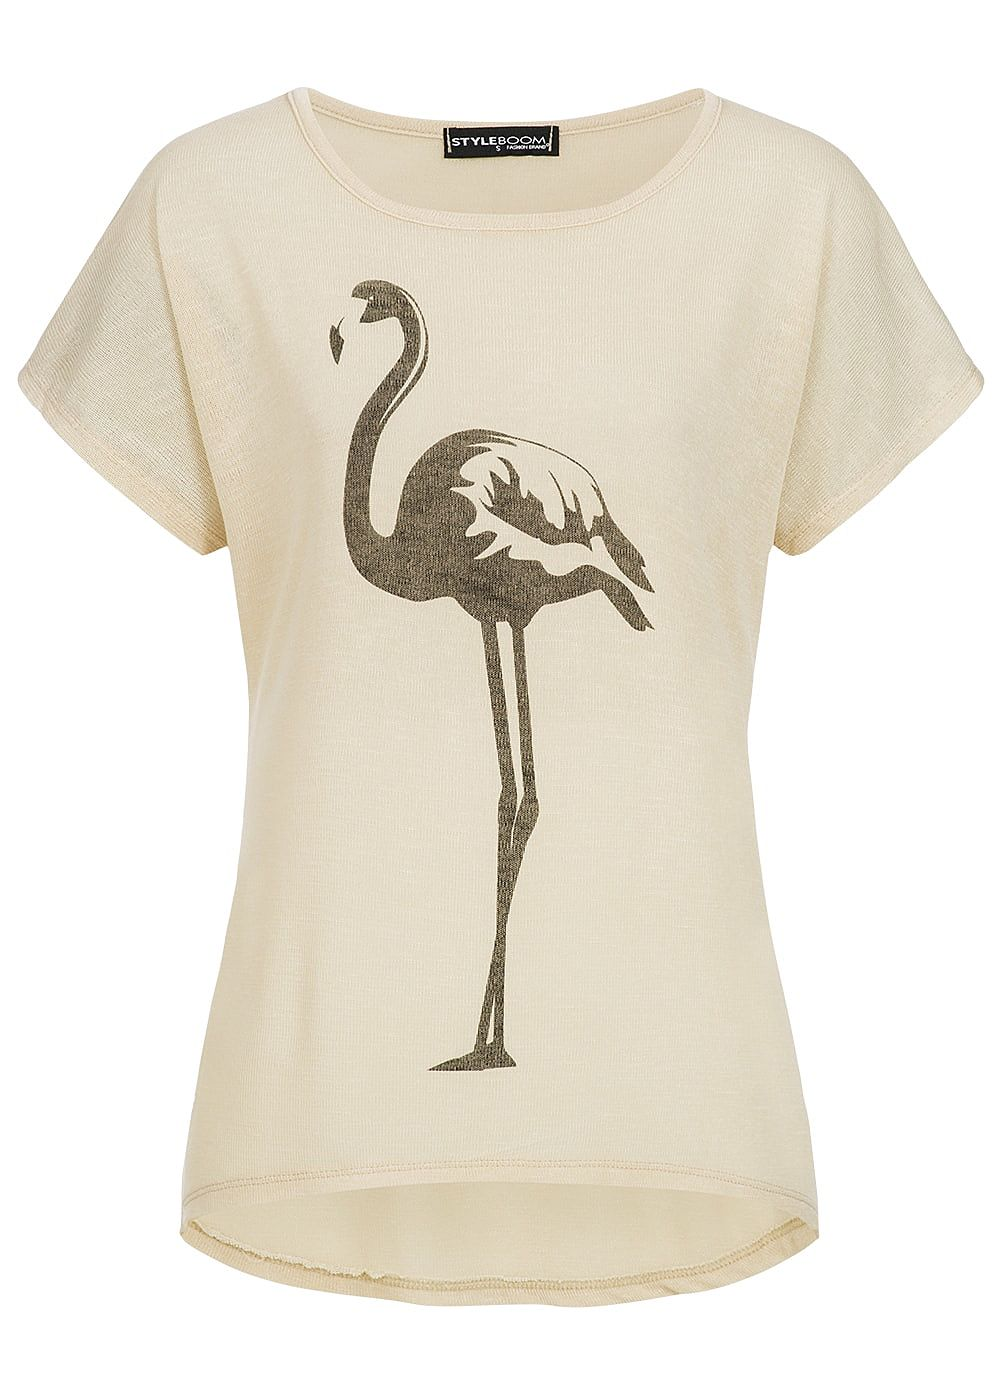 styleboom fashion damen t shirt flamingo print beige schwarz 77onlineshop. Black Bedroom Furniture Sets. Home Design Ideas